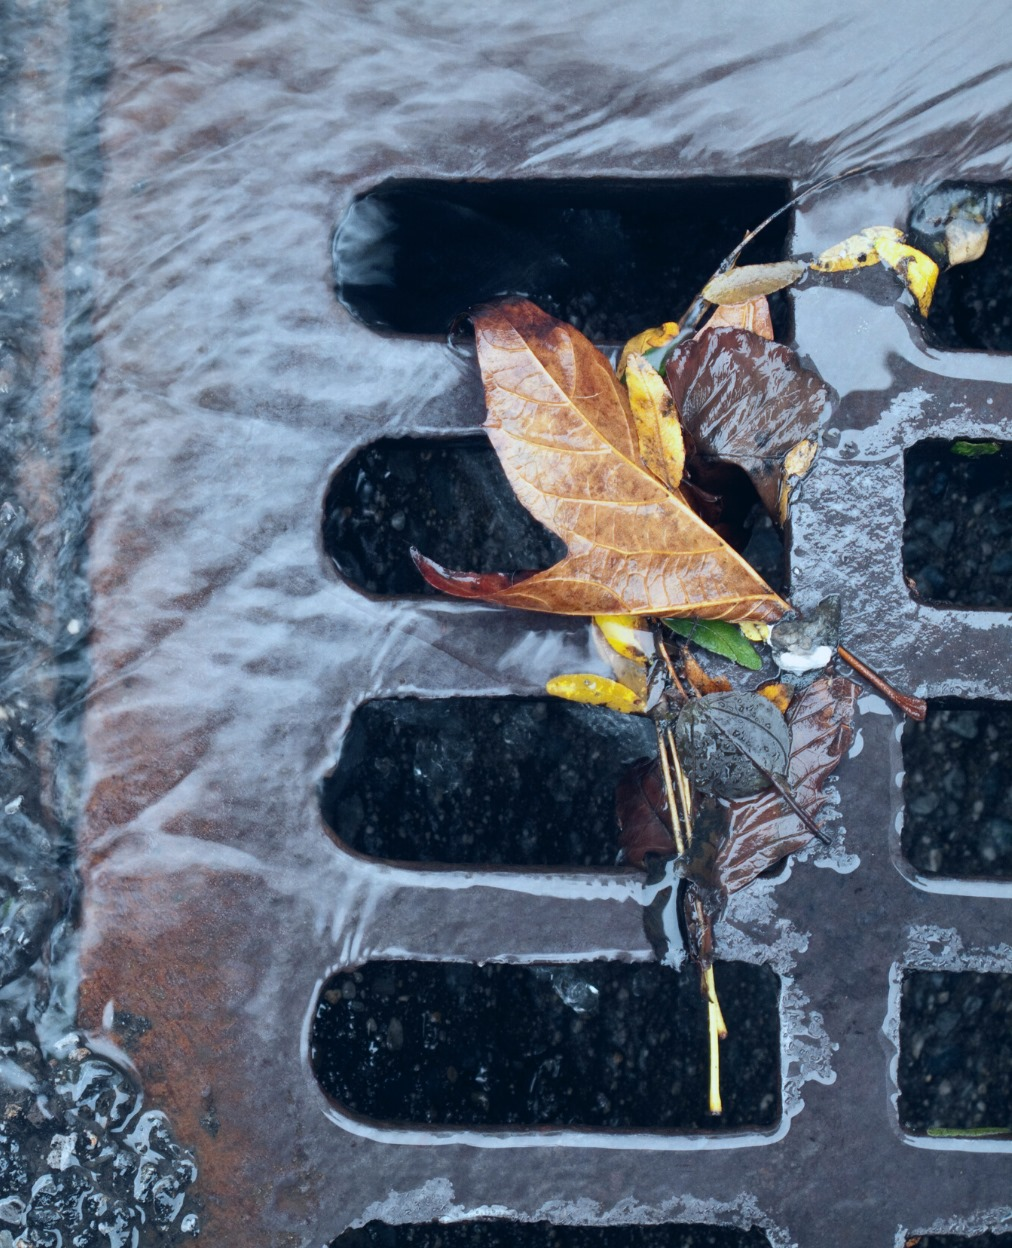 Drains Inspections and Surveying services in London